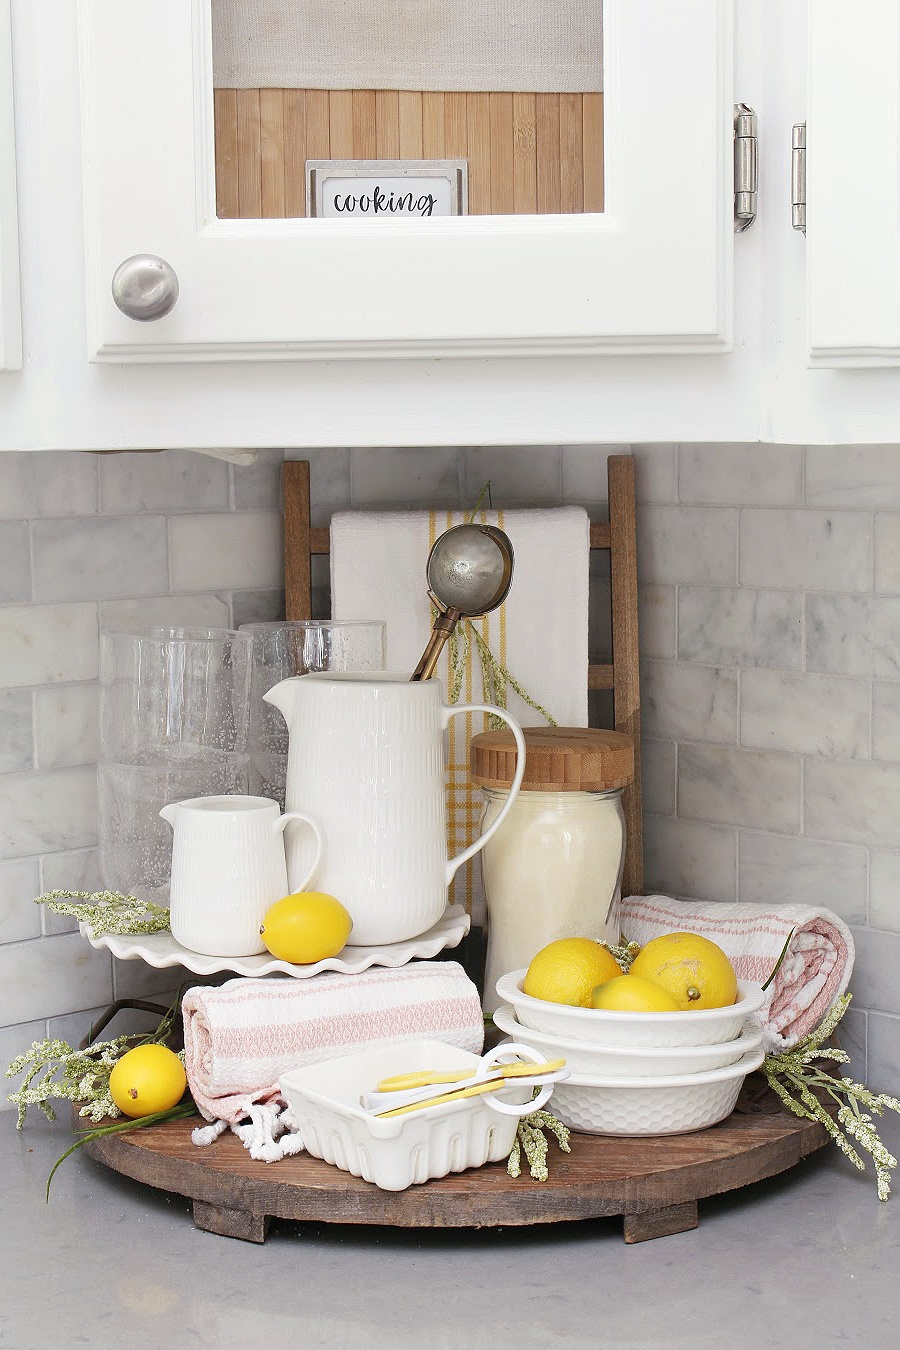 Summer kitchen decor using a wood tray, white dishware, and pops of yellow and pink.